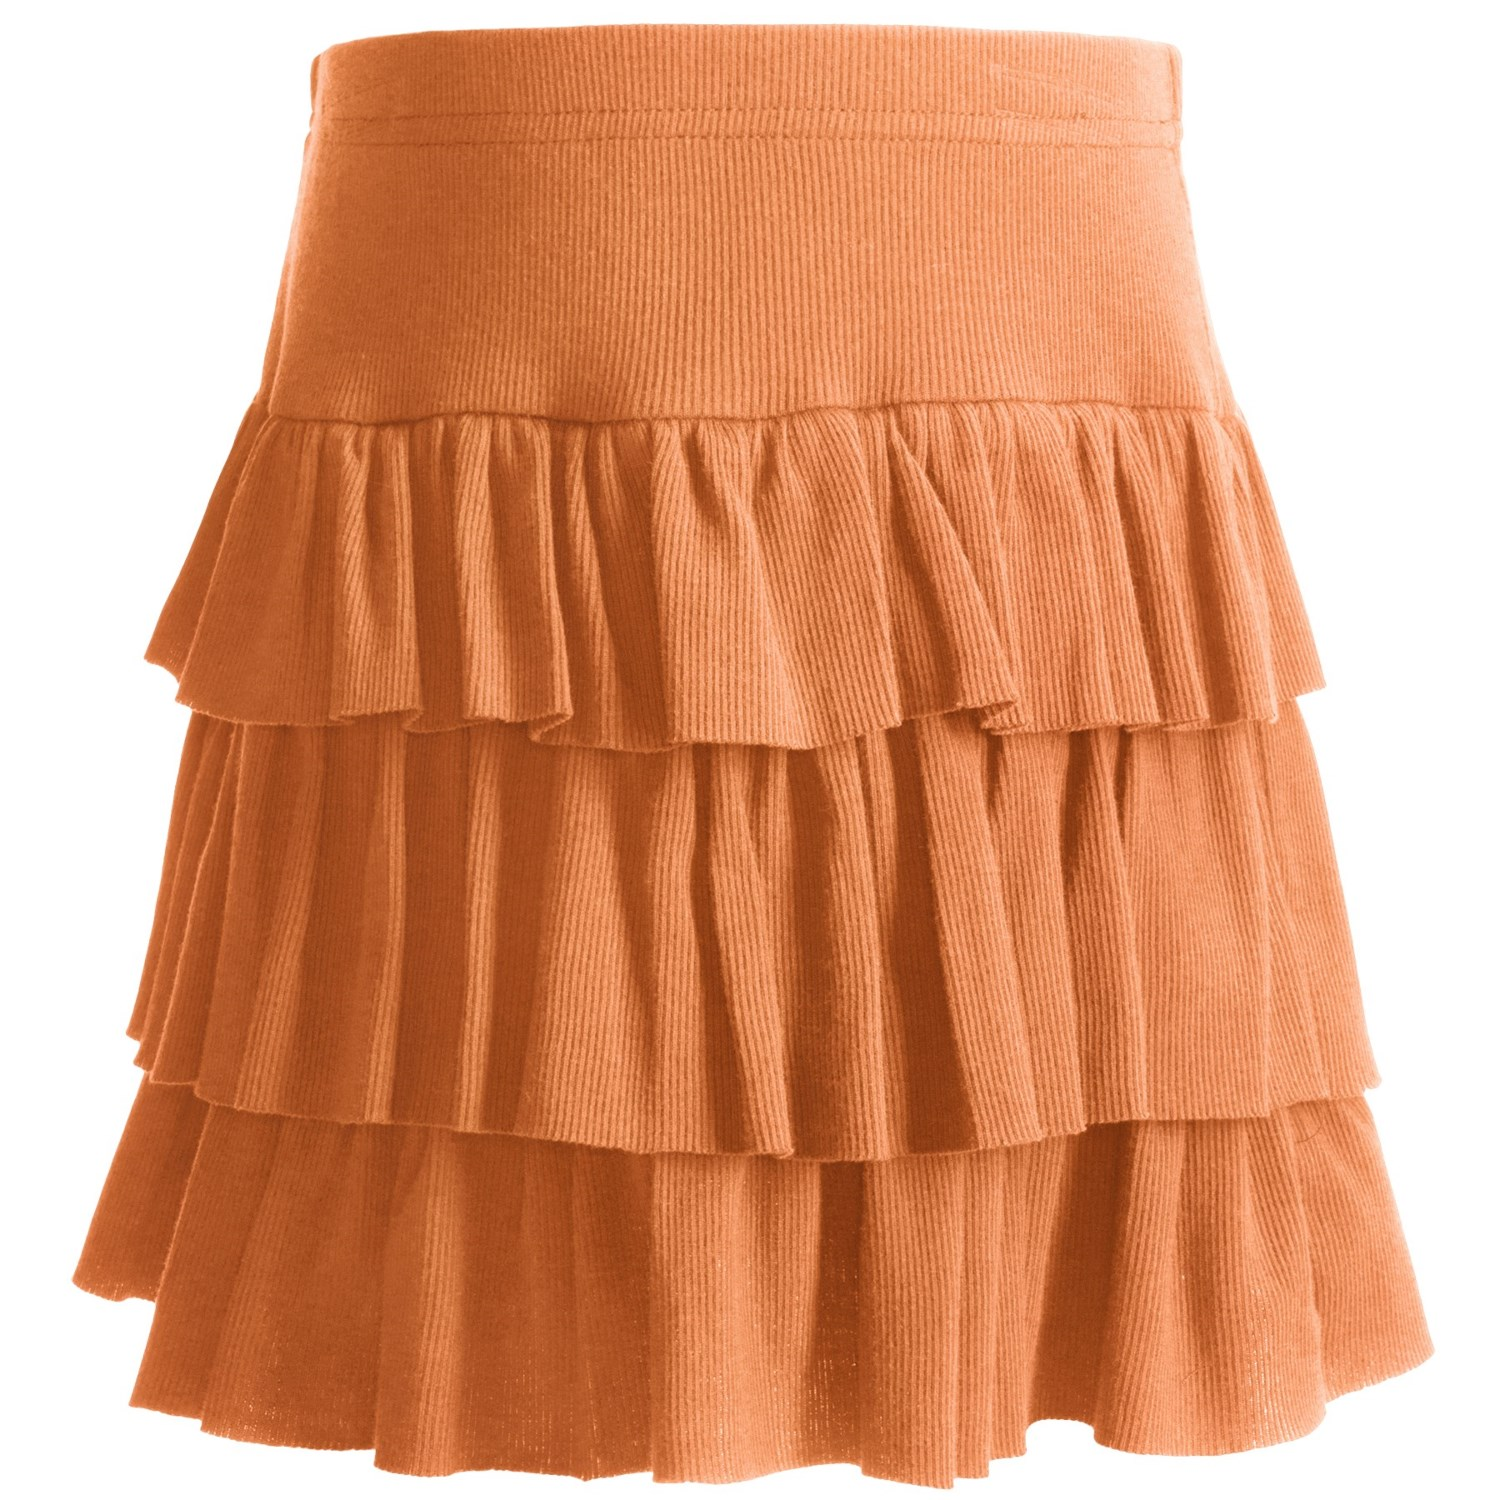 Flattering, form fitting ruffle pencil skirt with unique split on the SheIn Women's Cute Ruffle Hem High Waist Bow Knot Plaid Mini Skirt. by SheIn. $ - $ $ 16 $ 18 99 Prime. FREE Shipping on eligible orders. Some sizes/colors are Prime eligible. out of 5 stars Product Features.